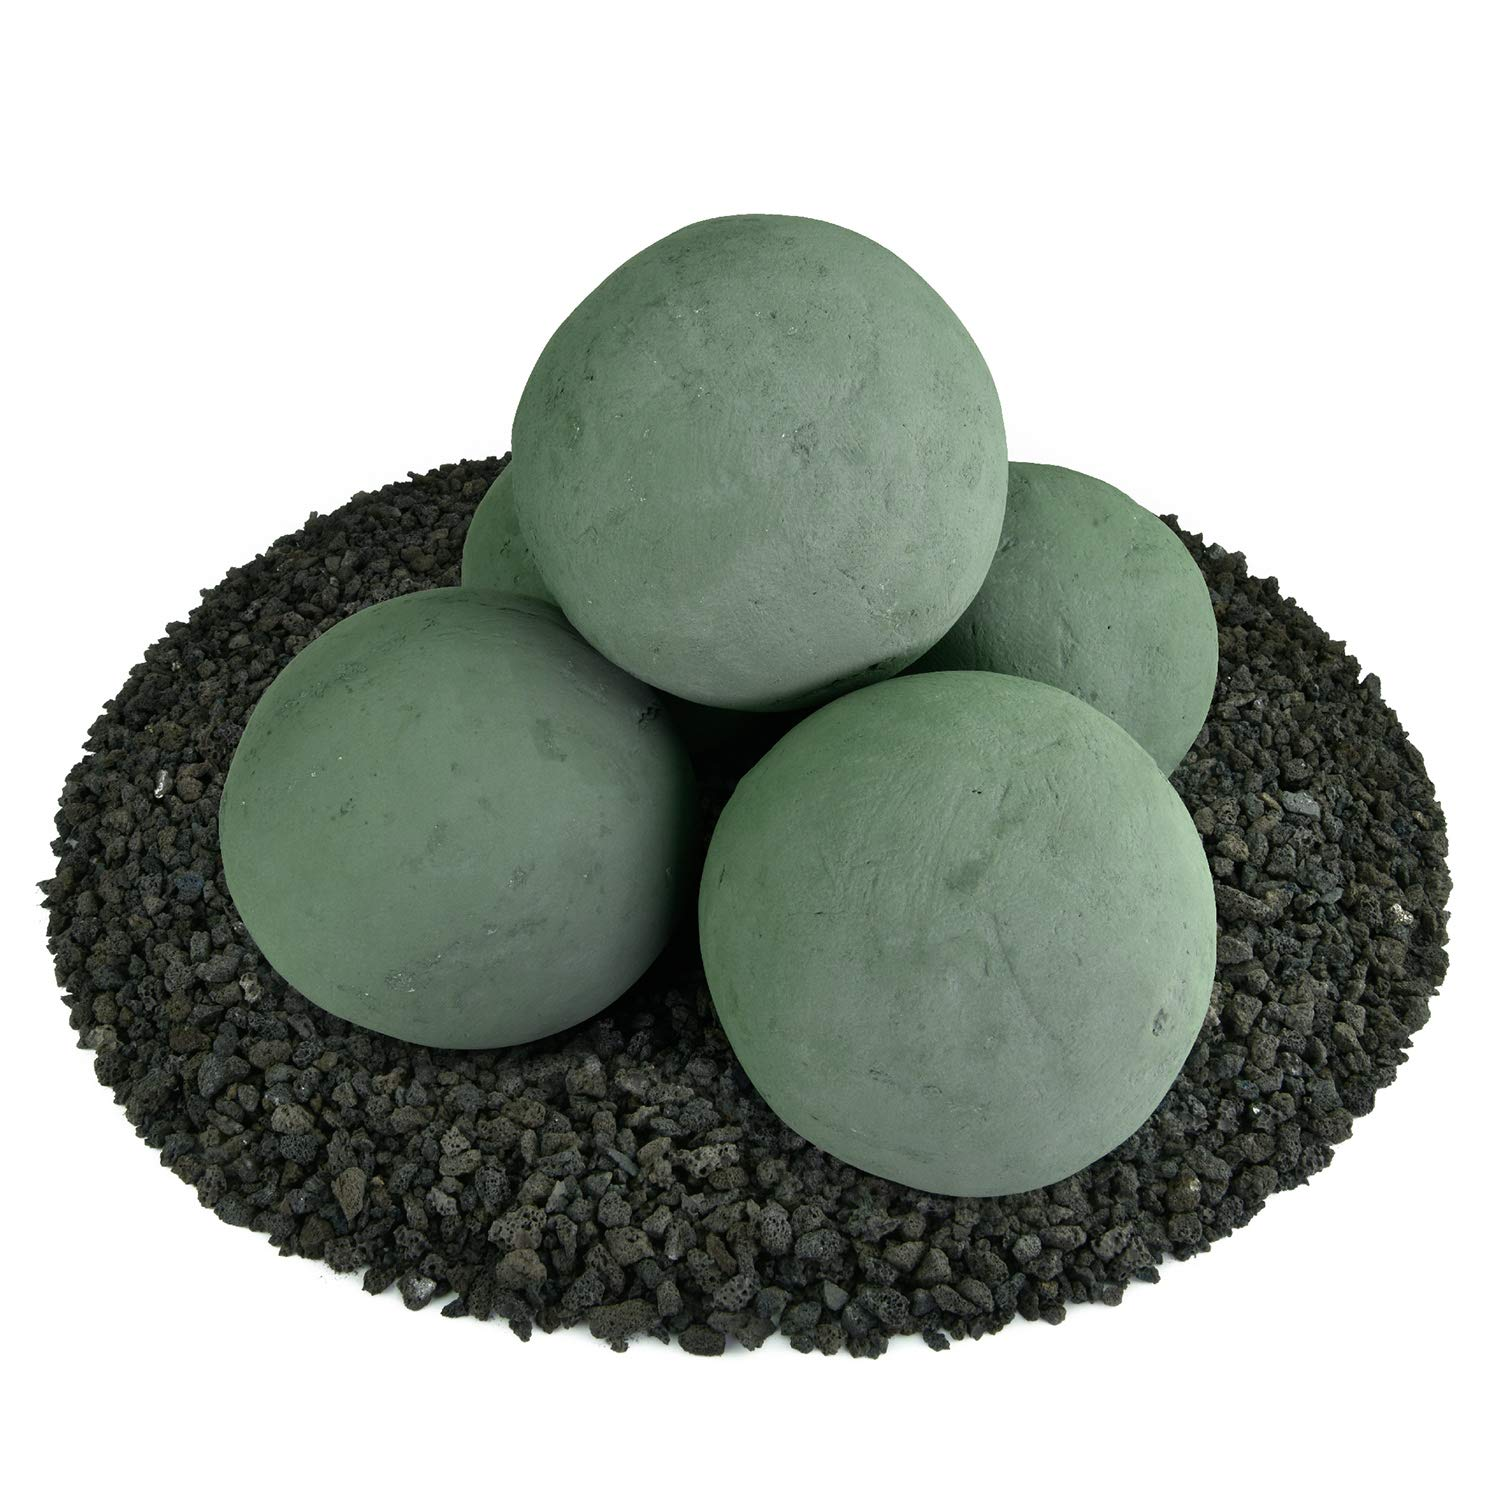 Ceramic Fire Balls   Set of 5   Modern Accessory for Indoor and Outdoor Fire Pits or Fireplaces – Brushed Concrete Look   Slate Green, 6 Inch